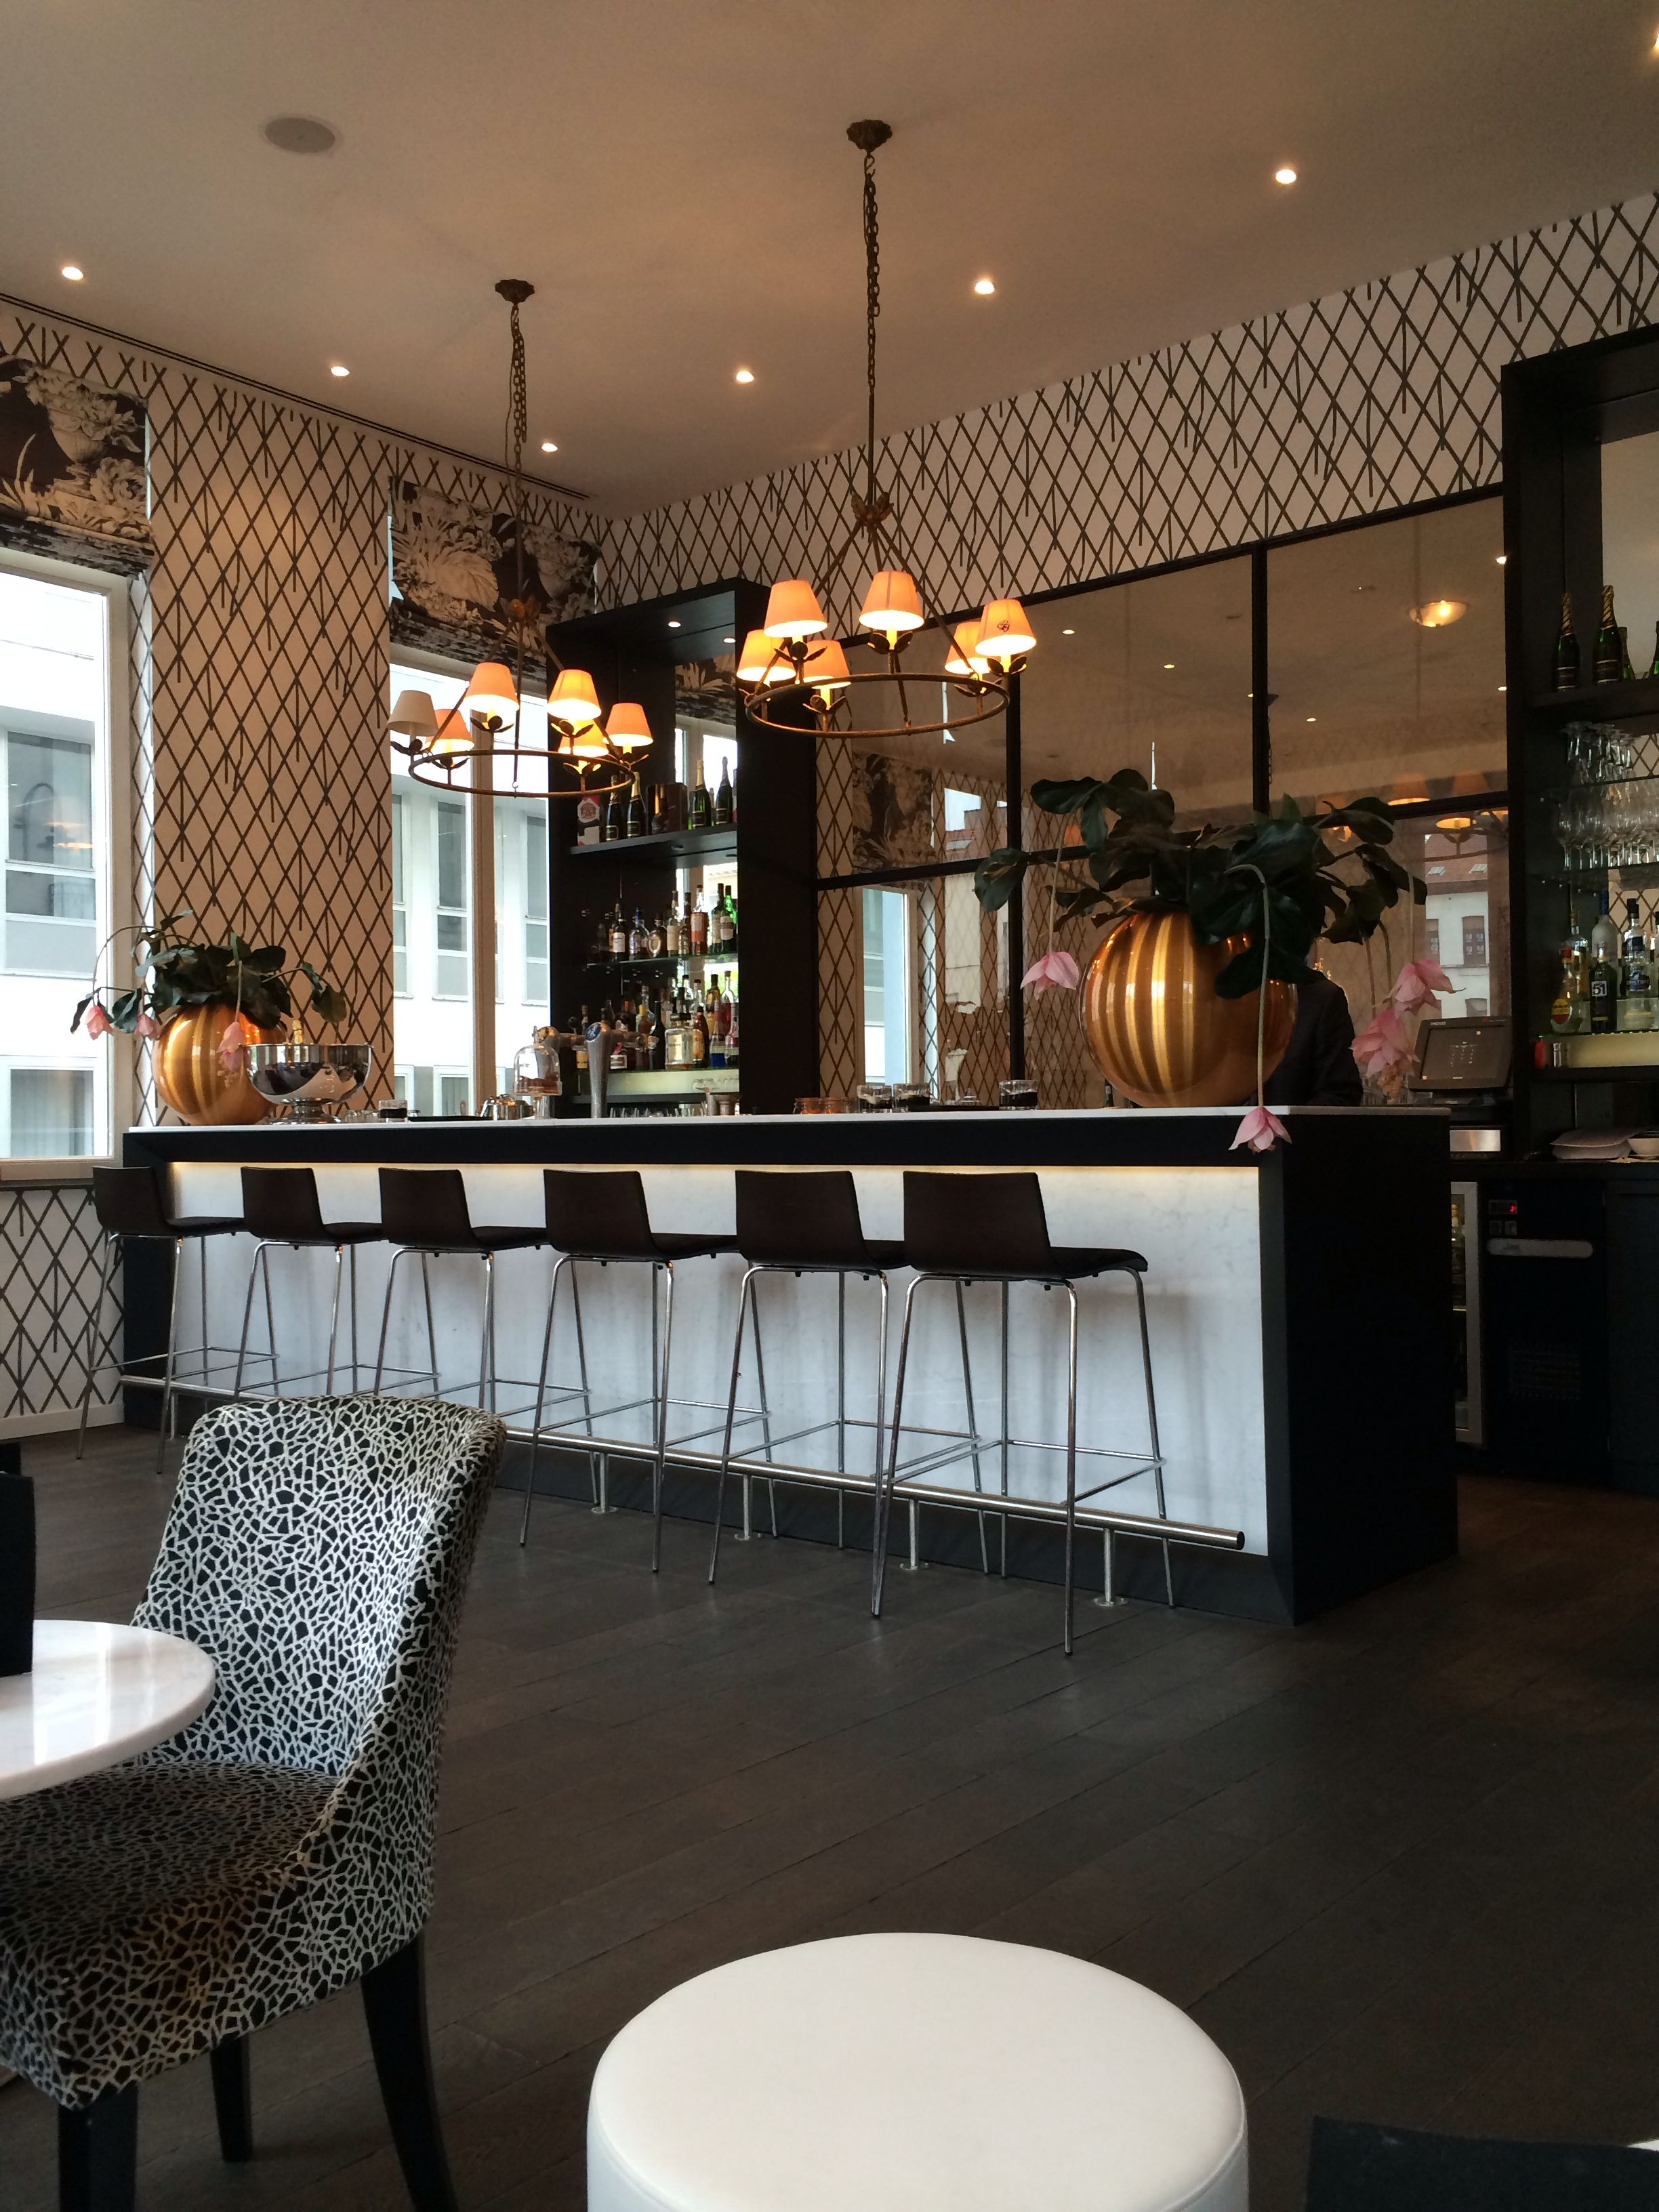 Sandton Pillows Hotel In Brussels Restaurant Bar Designrestaurant